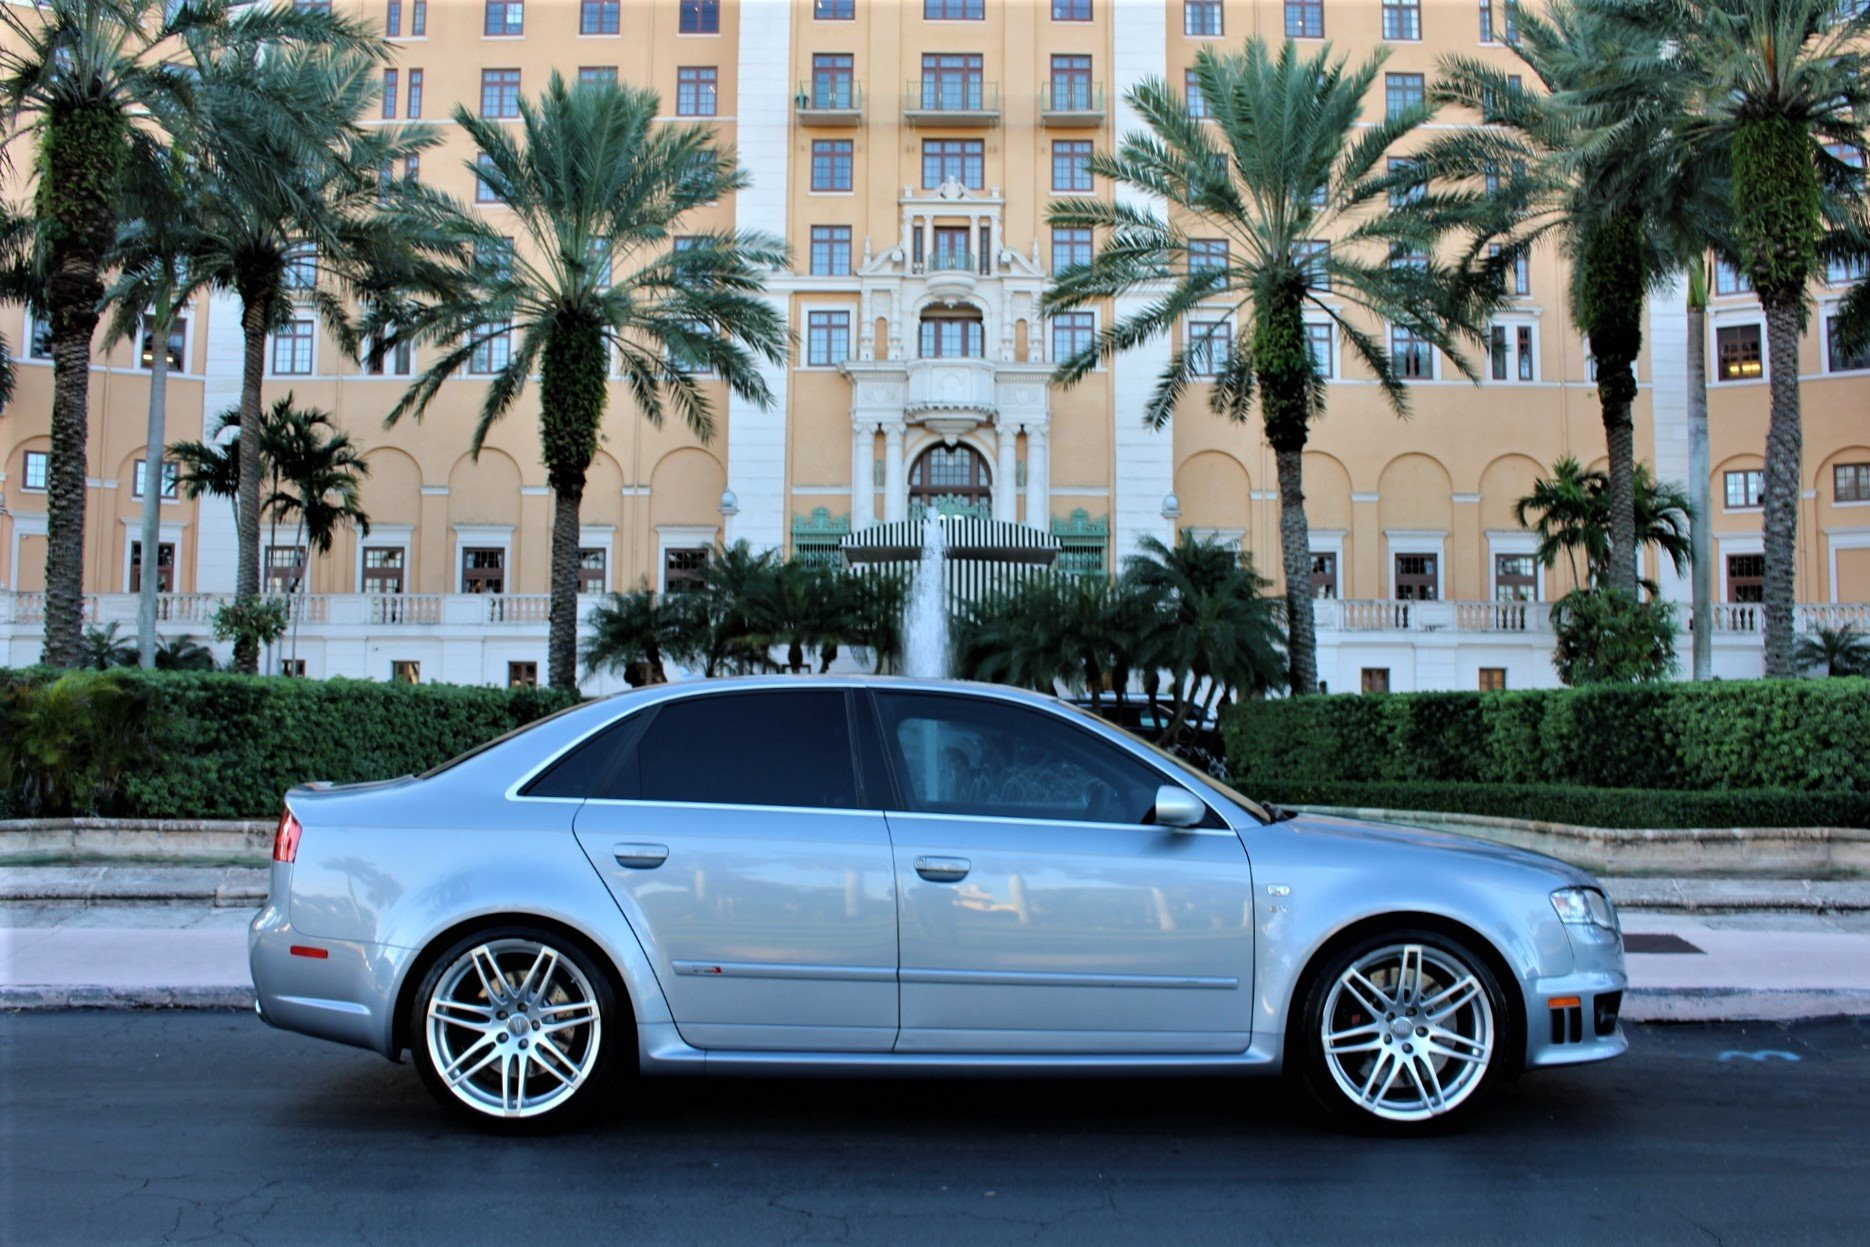 Used 2008 Audi RS 4 quattro for sale $39,850 at The Gables Sports Cars in Miami FL 33146 1